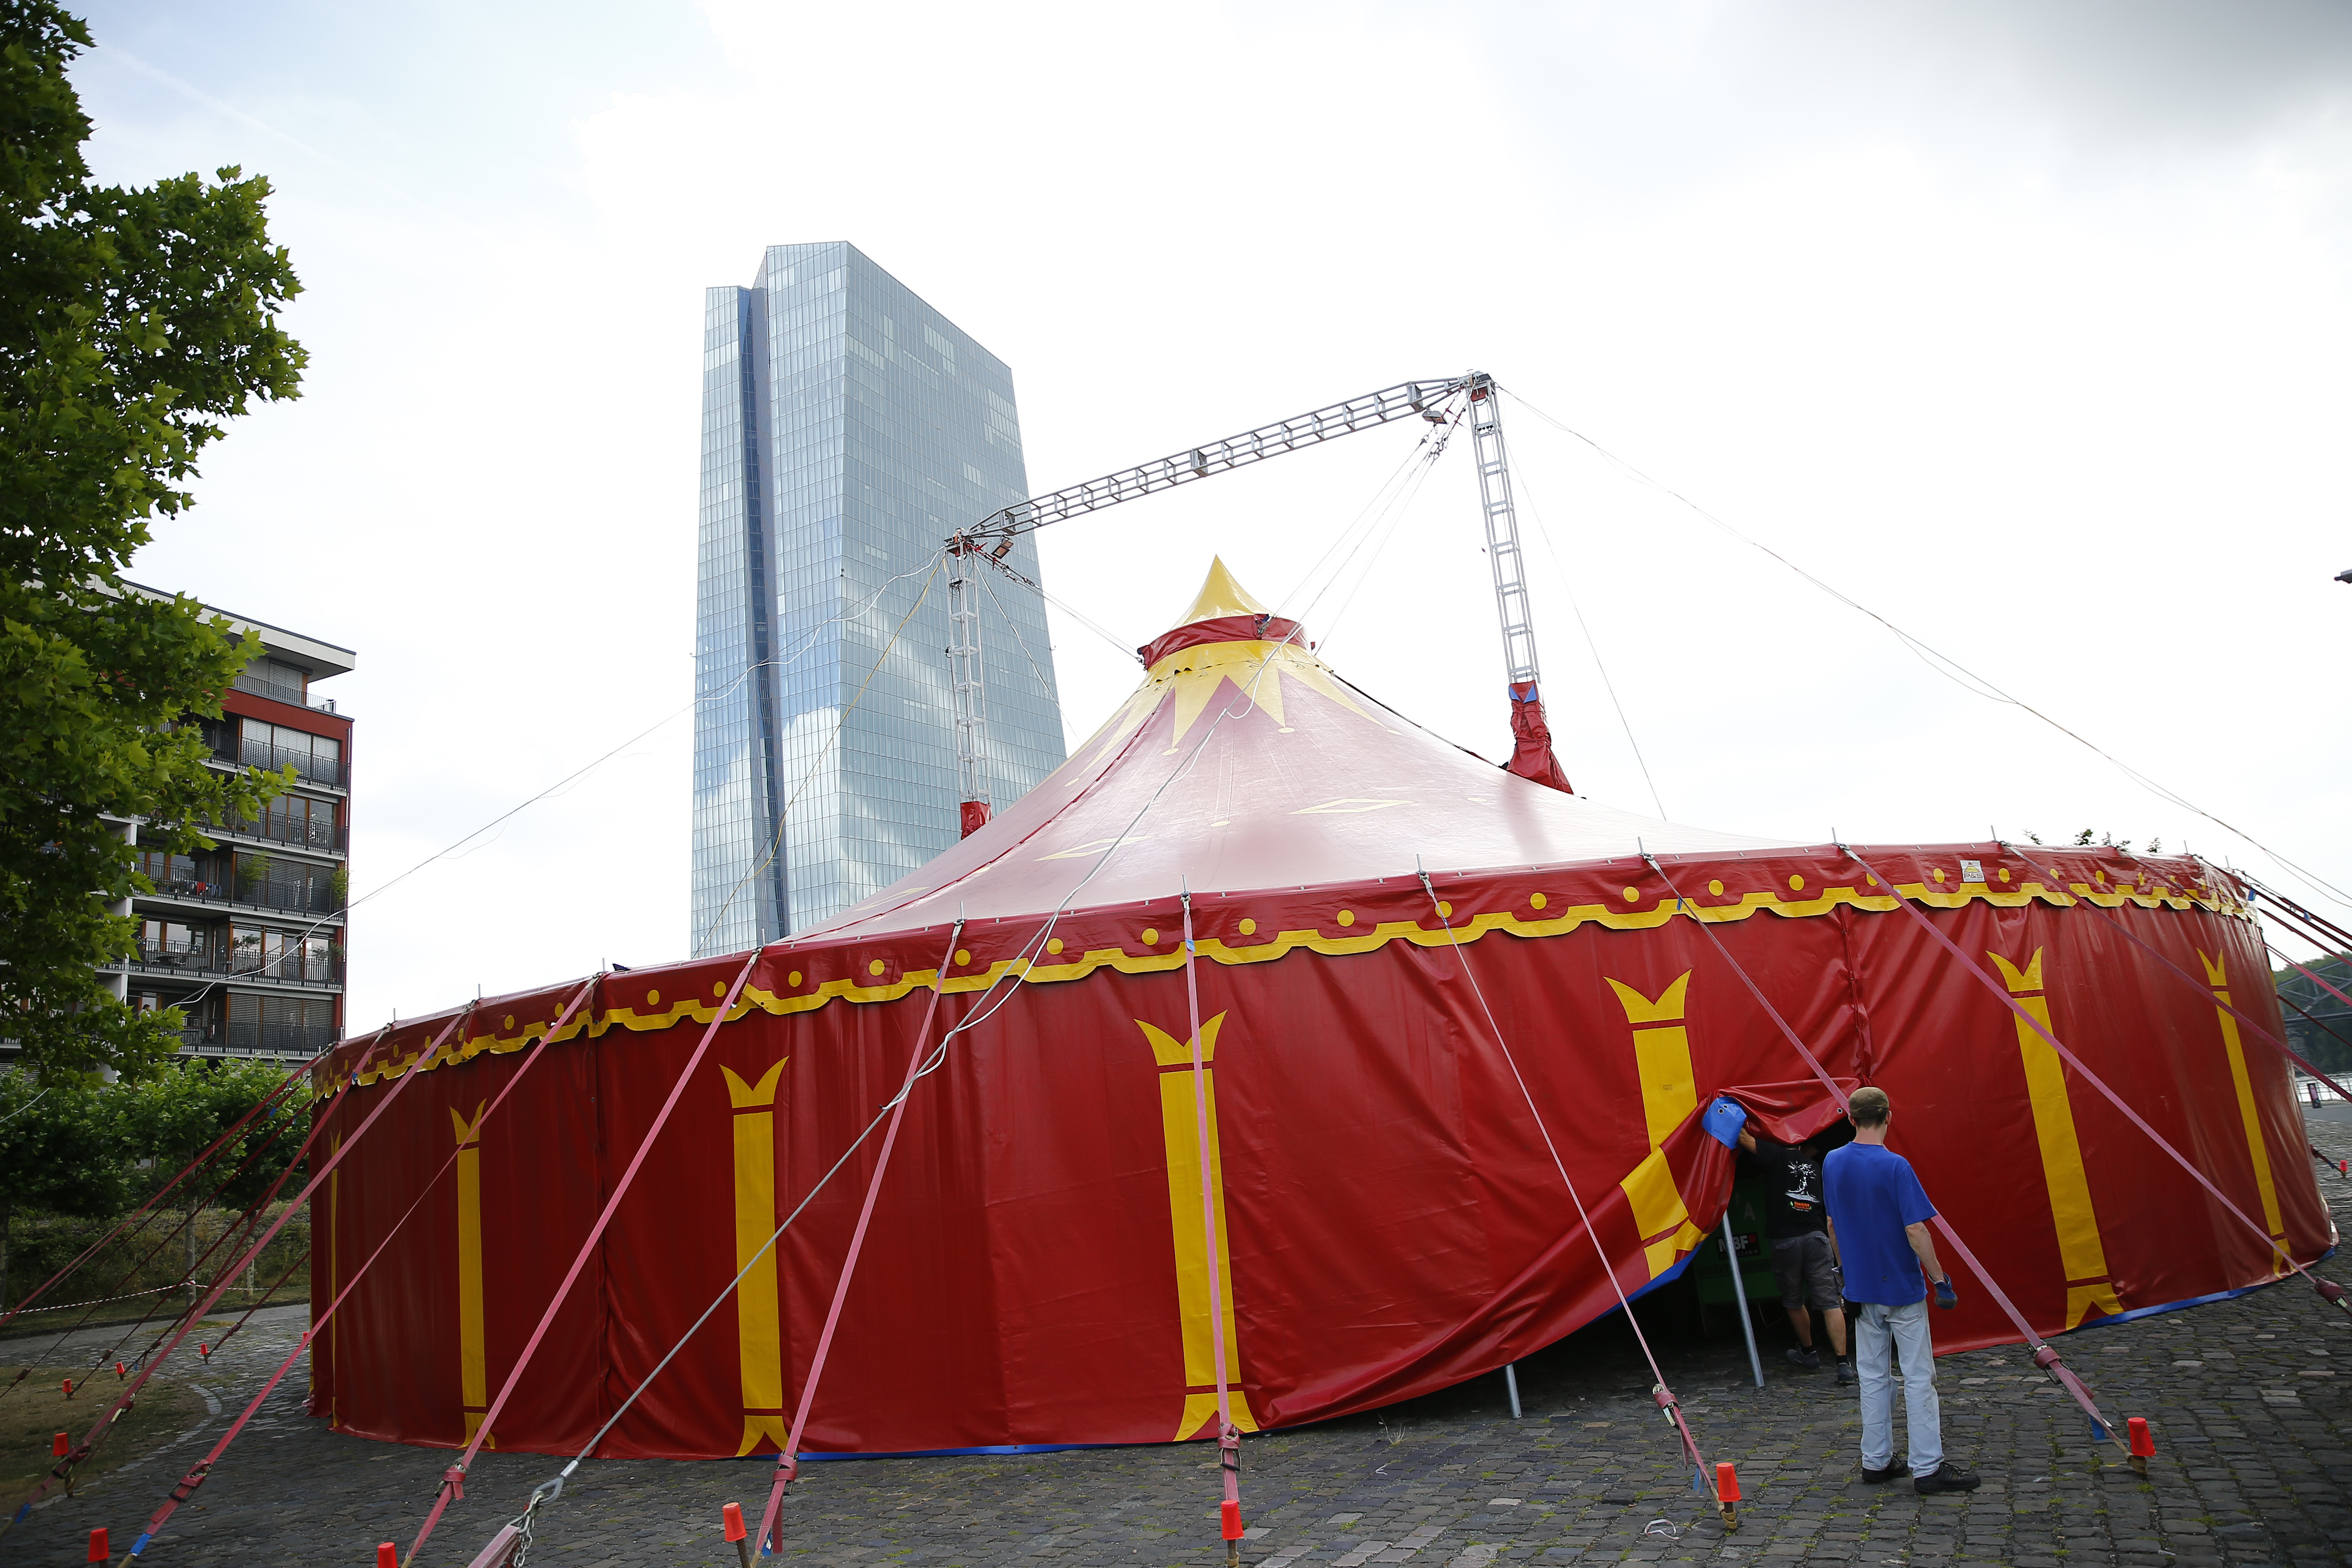 Circus Tent Collapse Kills 2 in New Hampshire : Society